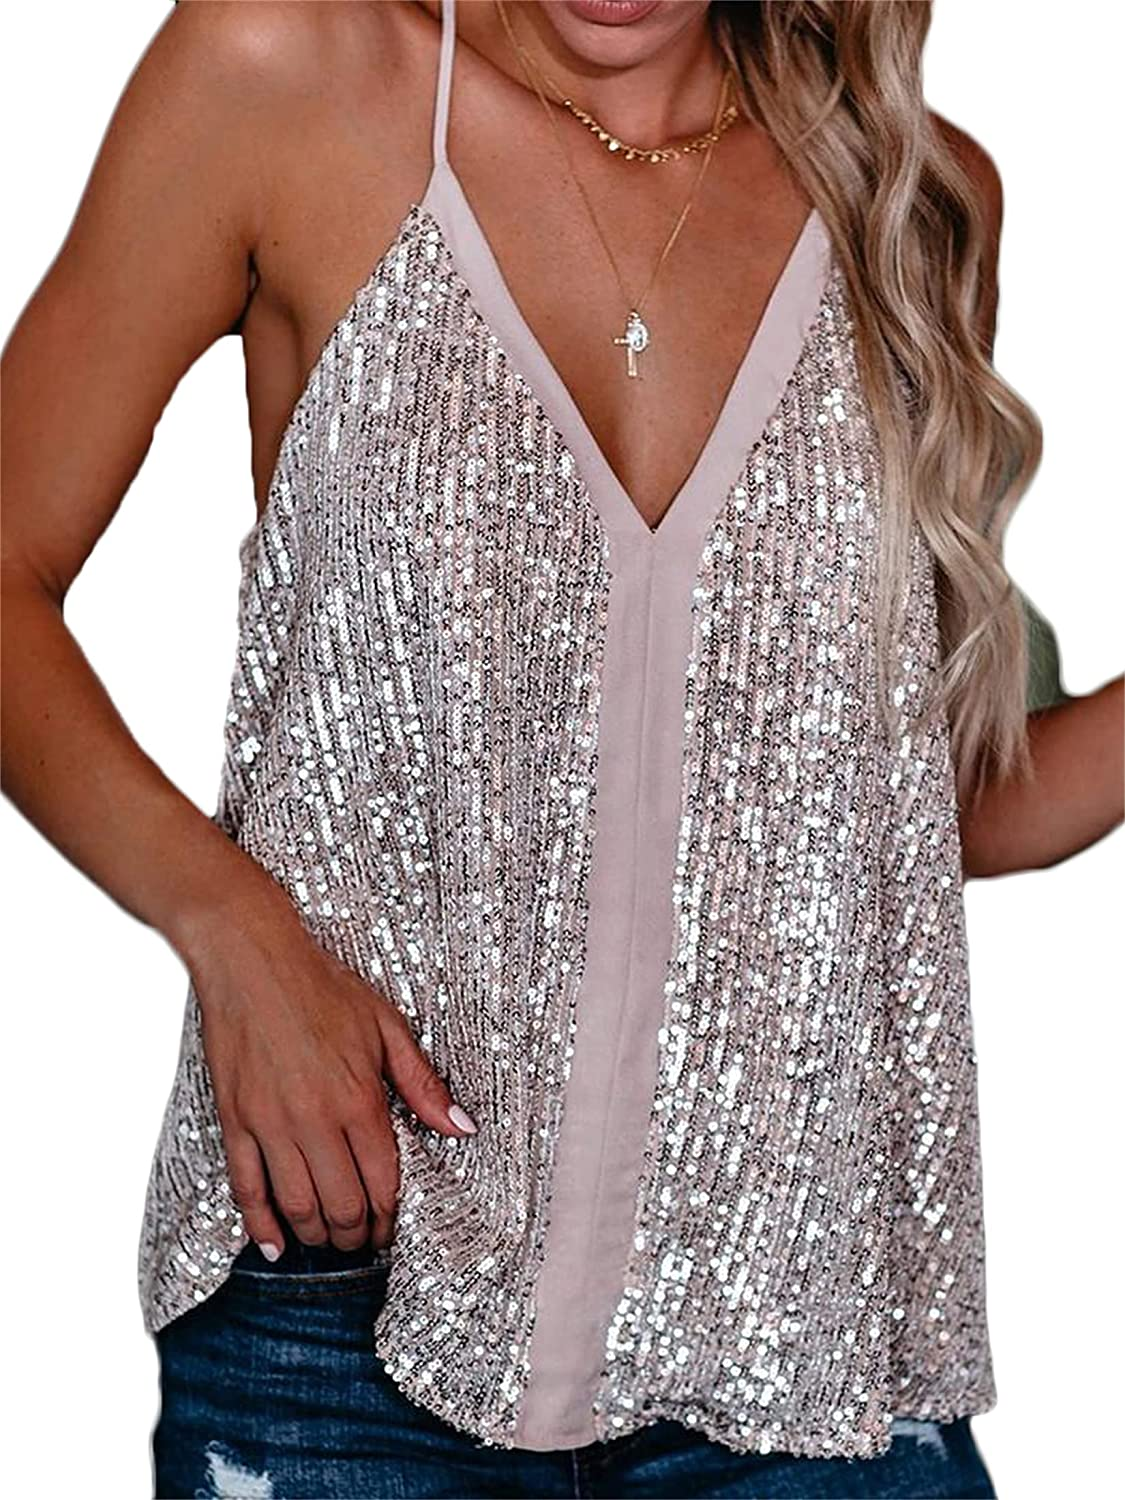 Andongnywell Women's Solid Color Sequined Camisole Shining Glitter Top Shimmer Sequin Tank Blouses Tunics